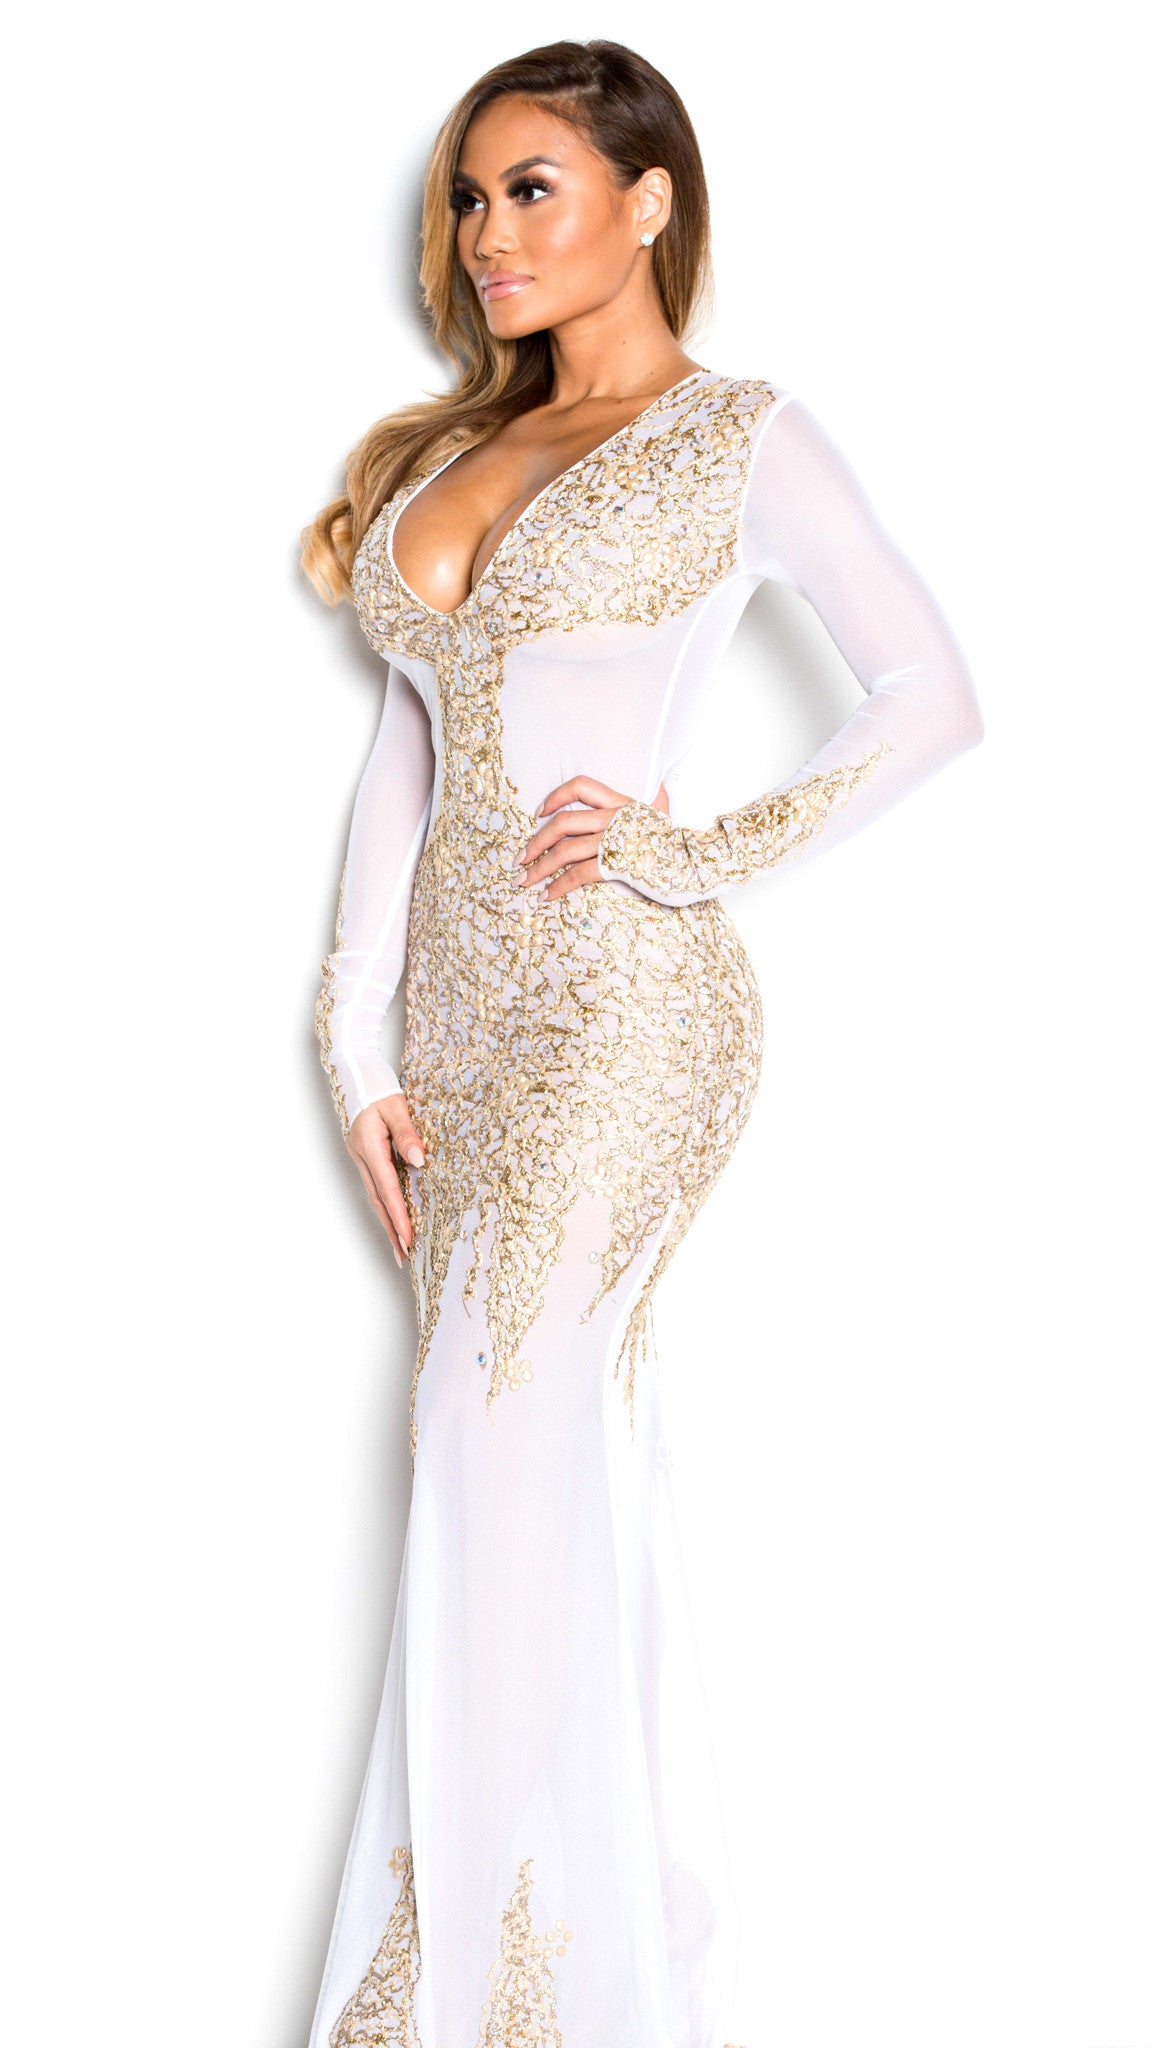 BEYONCE GOWN IN WHITE WITH GOLD - HOLT